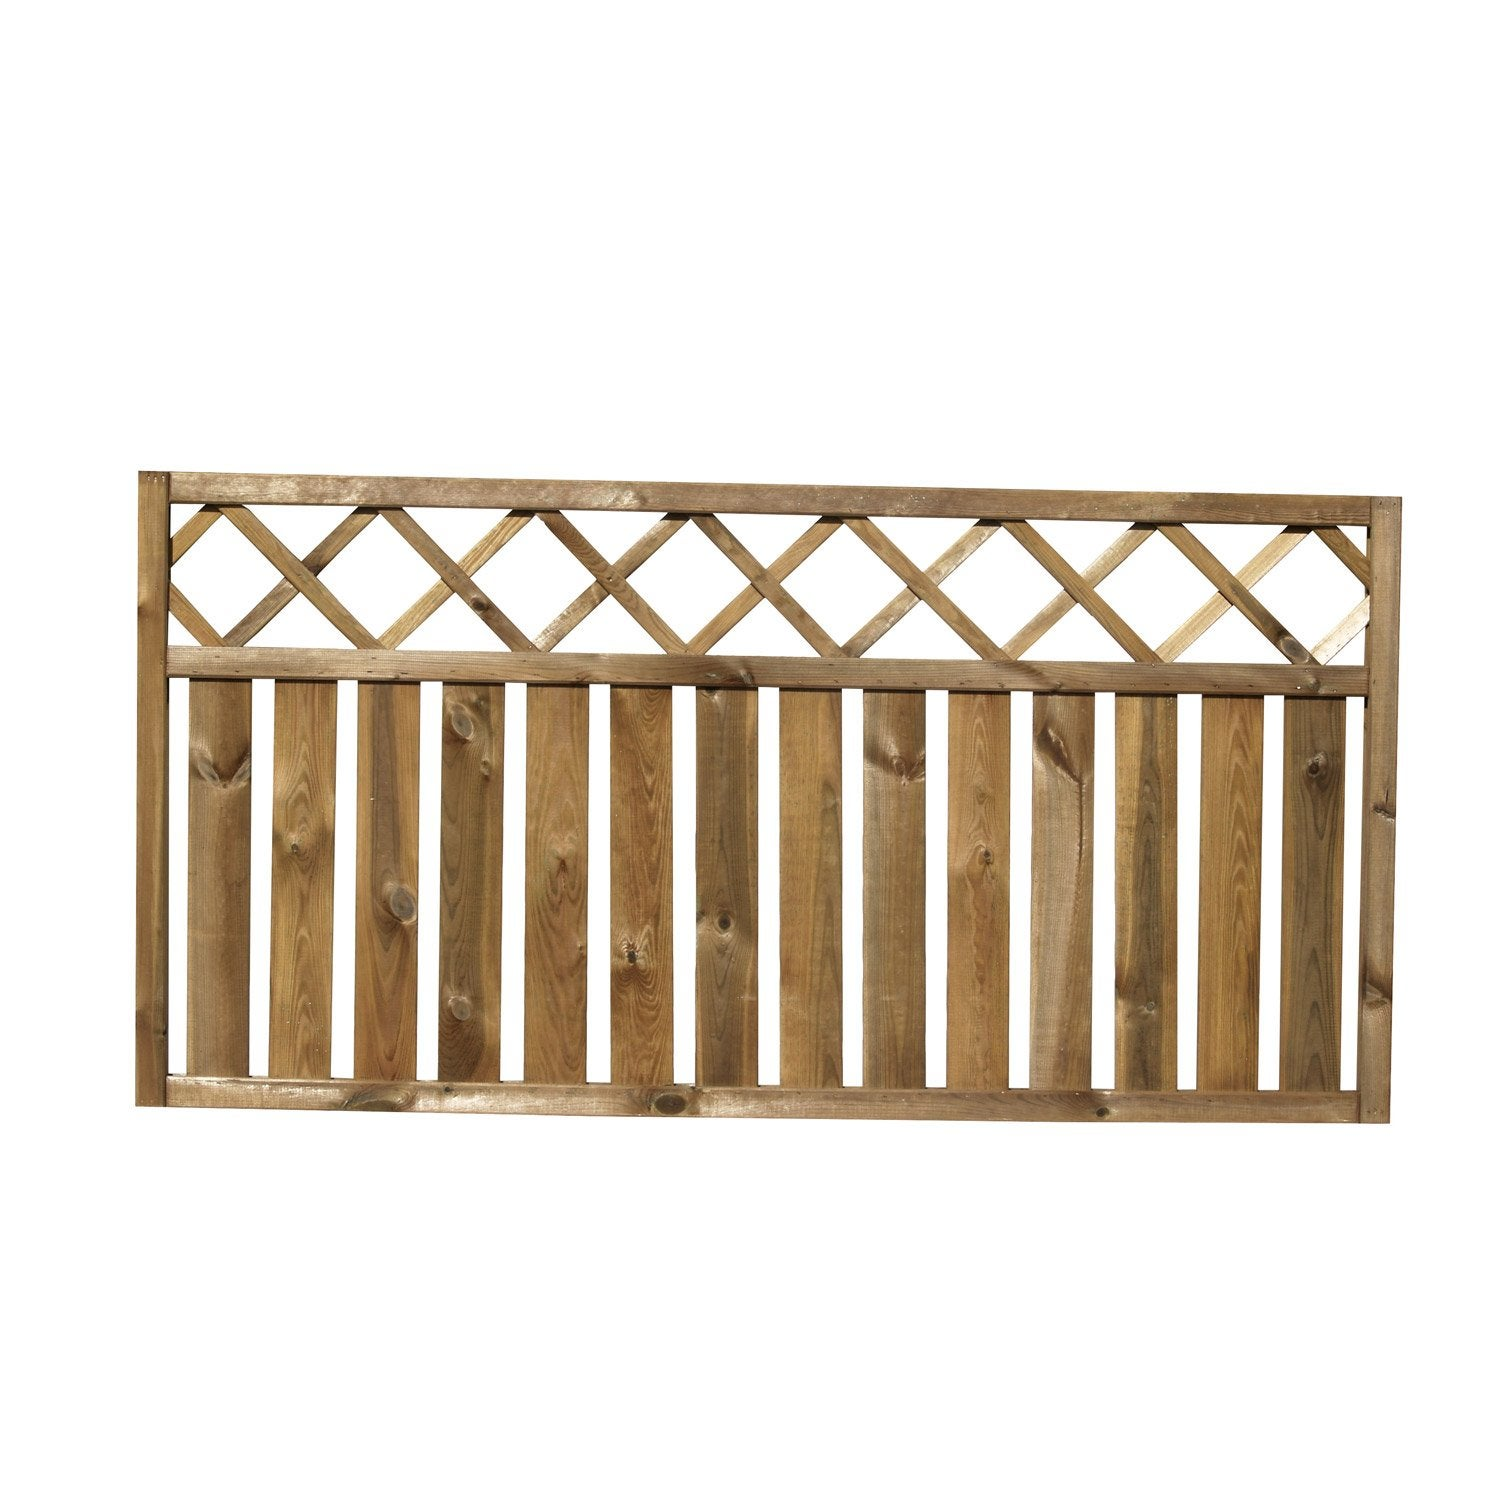 Barri re bois pinto naturel x cm leroy merlin for Cloture bois jardin leroy merlin